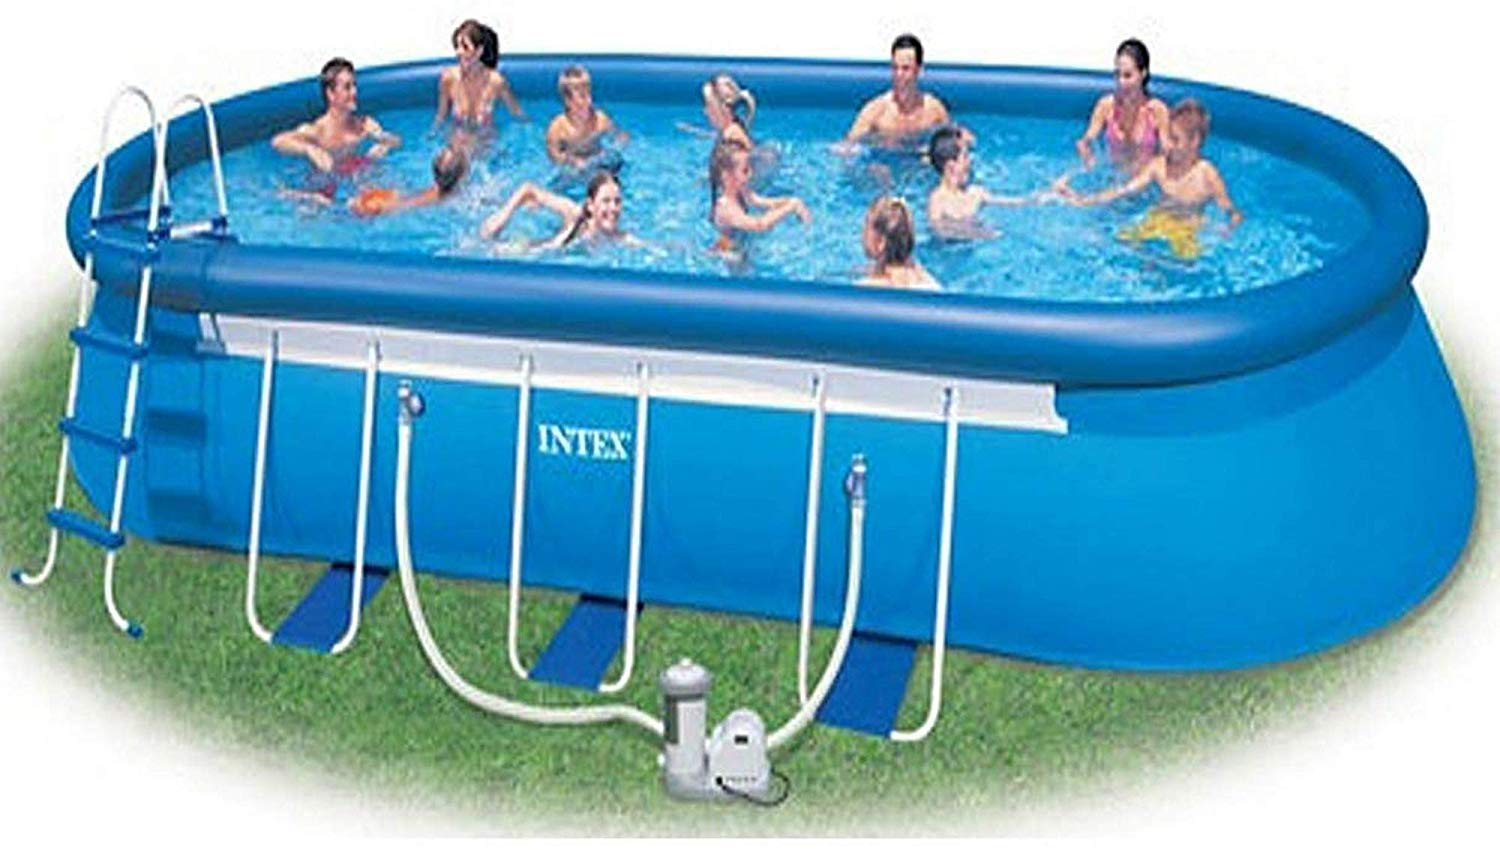 Intex 24' x 12' x 48'' Oval Ellipse Easy Frame Pool Set - Filter Pump & Hoses Not Included by Intex (Image #1)